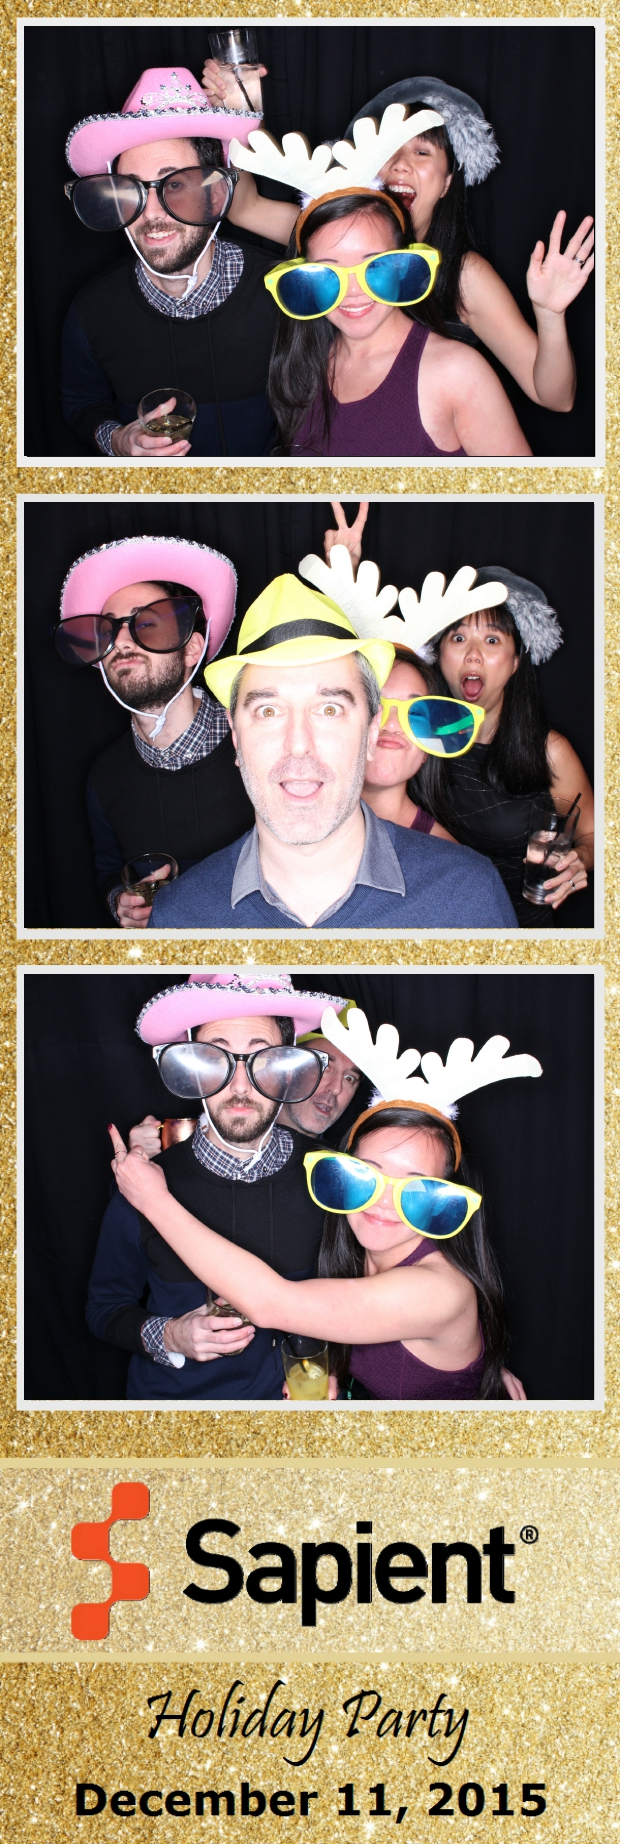 Guest House Events Photo Booth Sapient Holiday Party (69).jpg